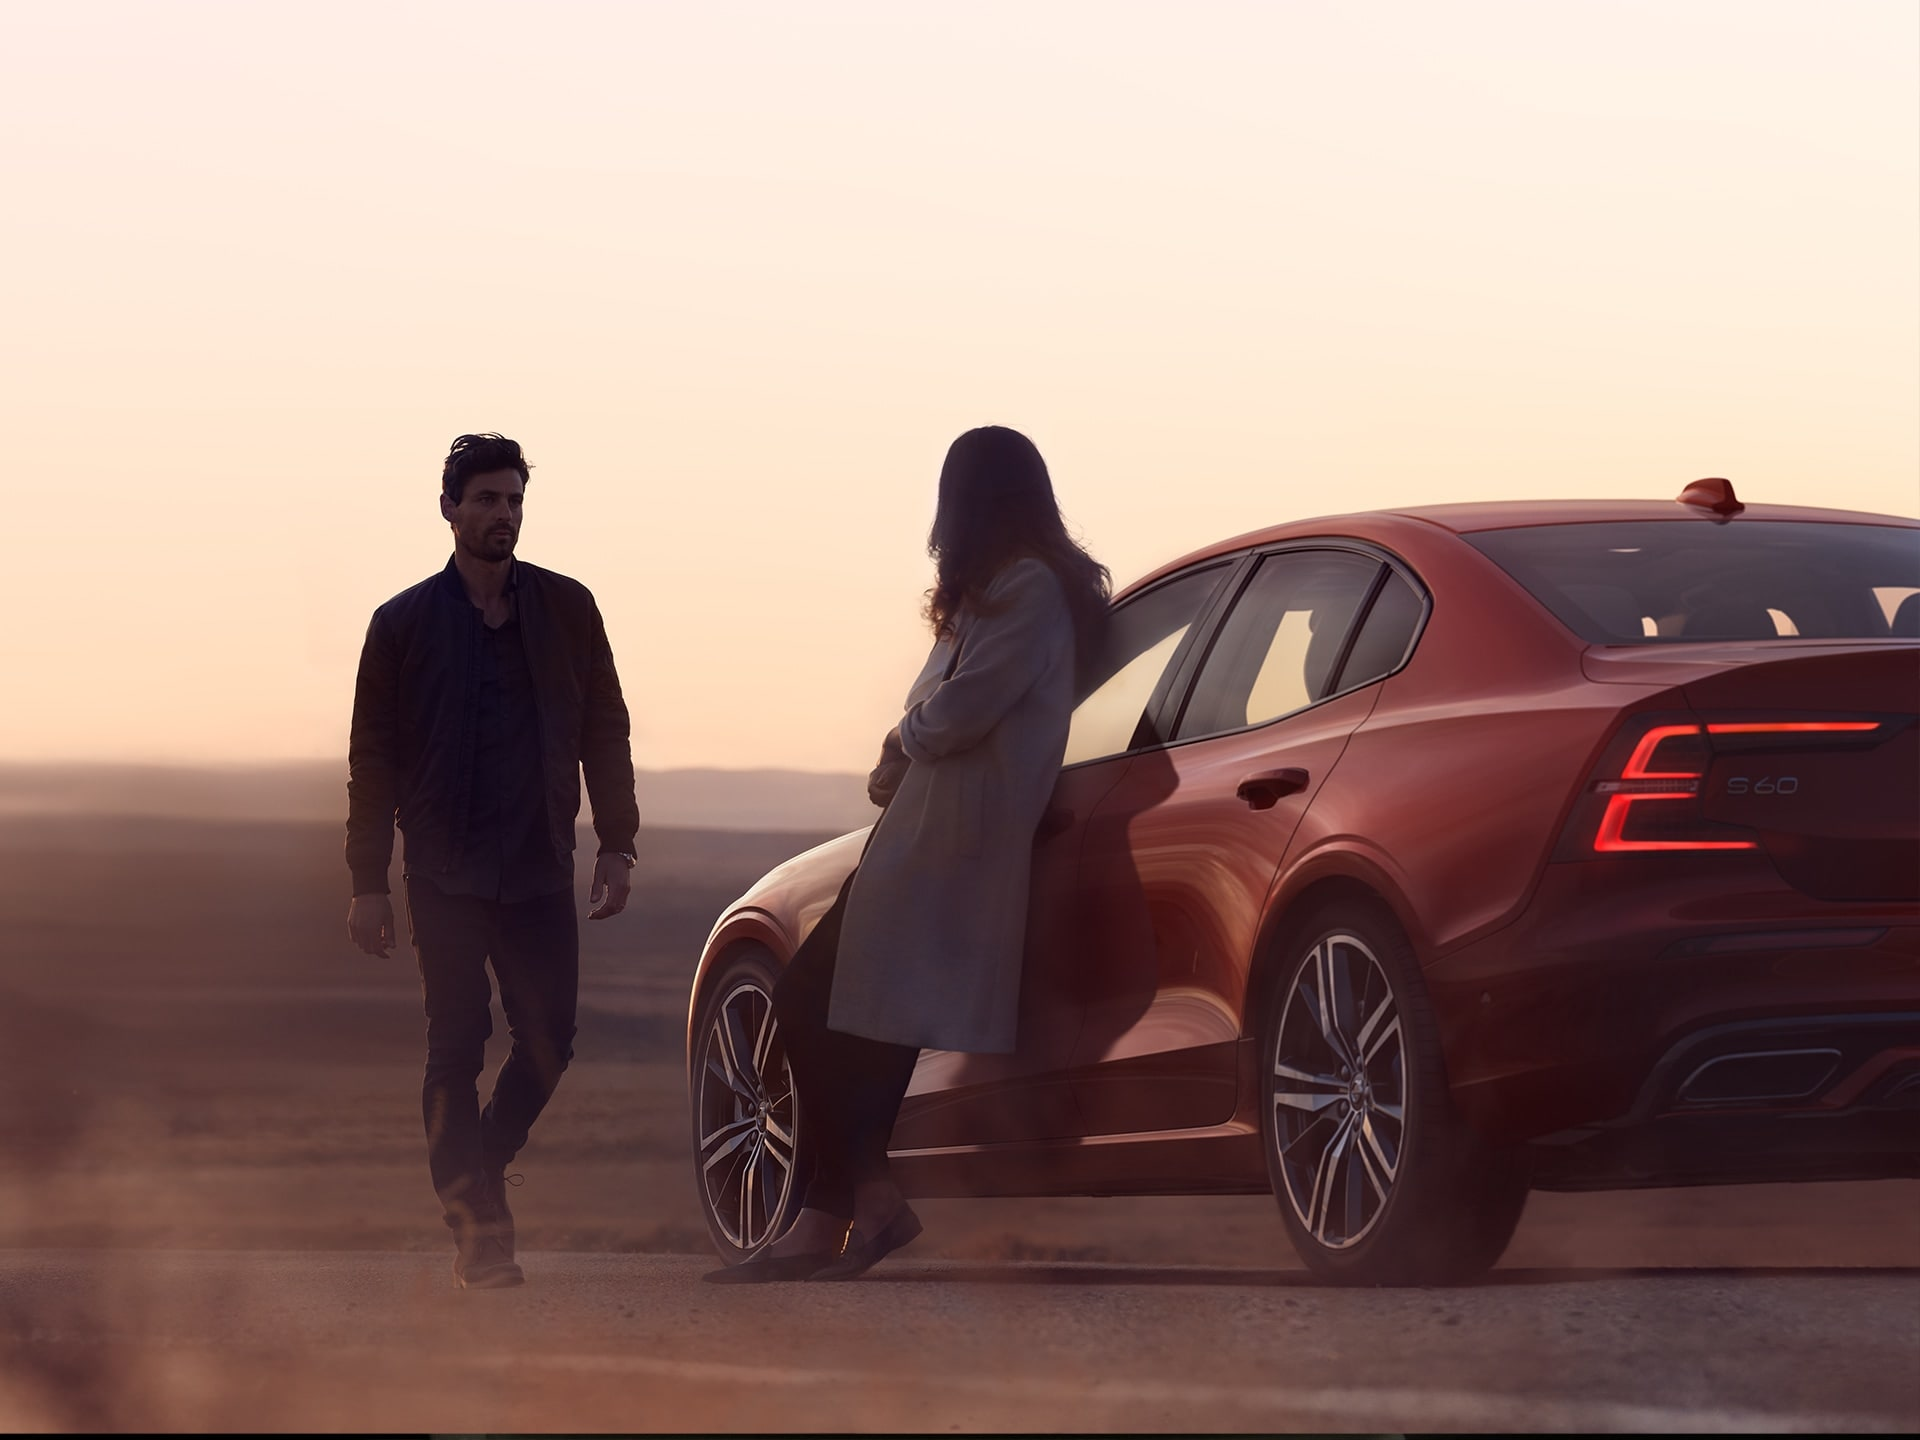 A man and a woman are standing close to their red S60, it is sunset.